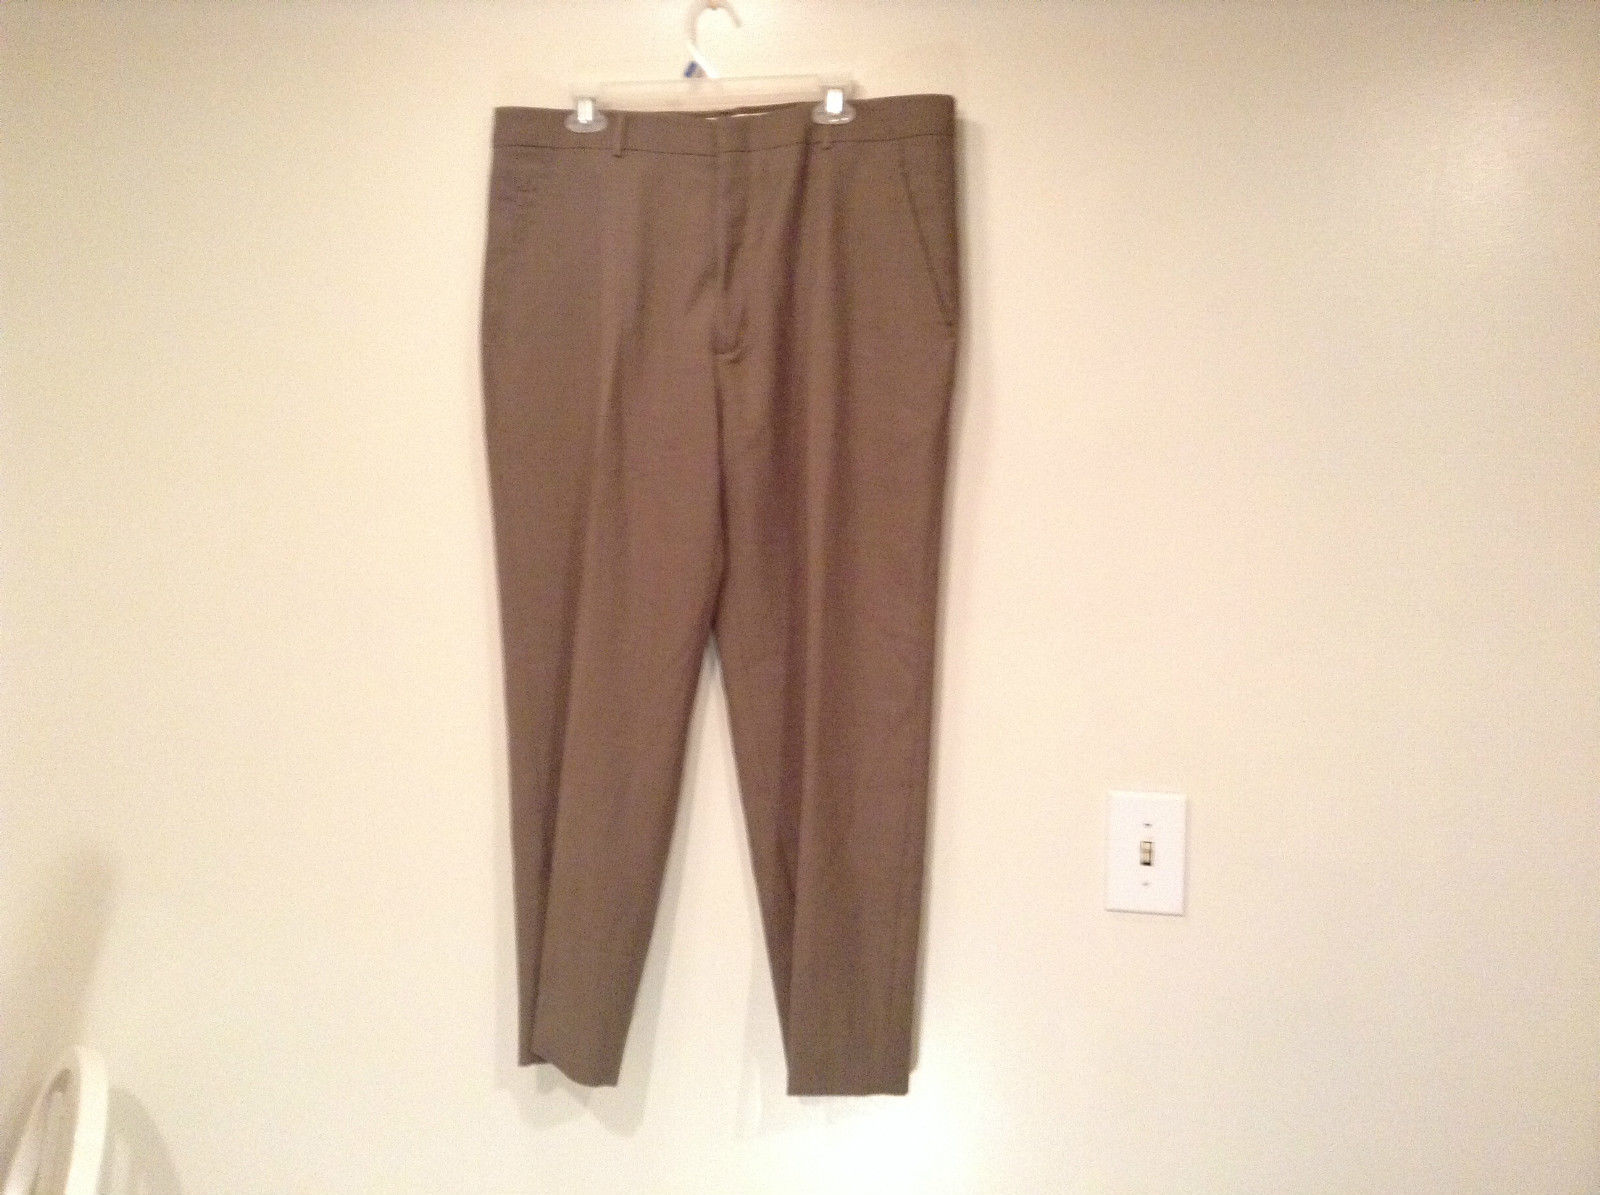 Kenneth Cole Reaction Size 36 by 30 Light Brown Pleated Front Dress Pants